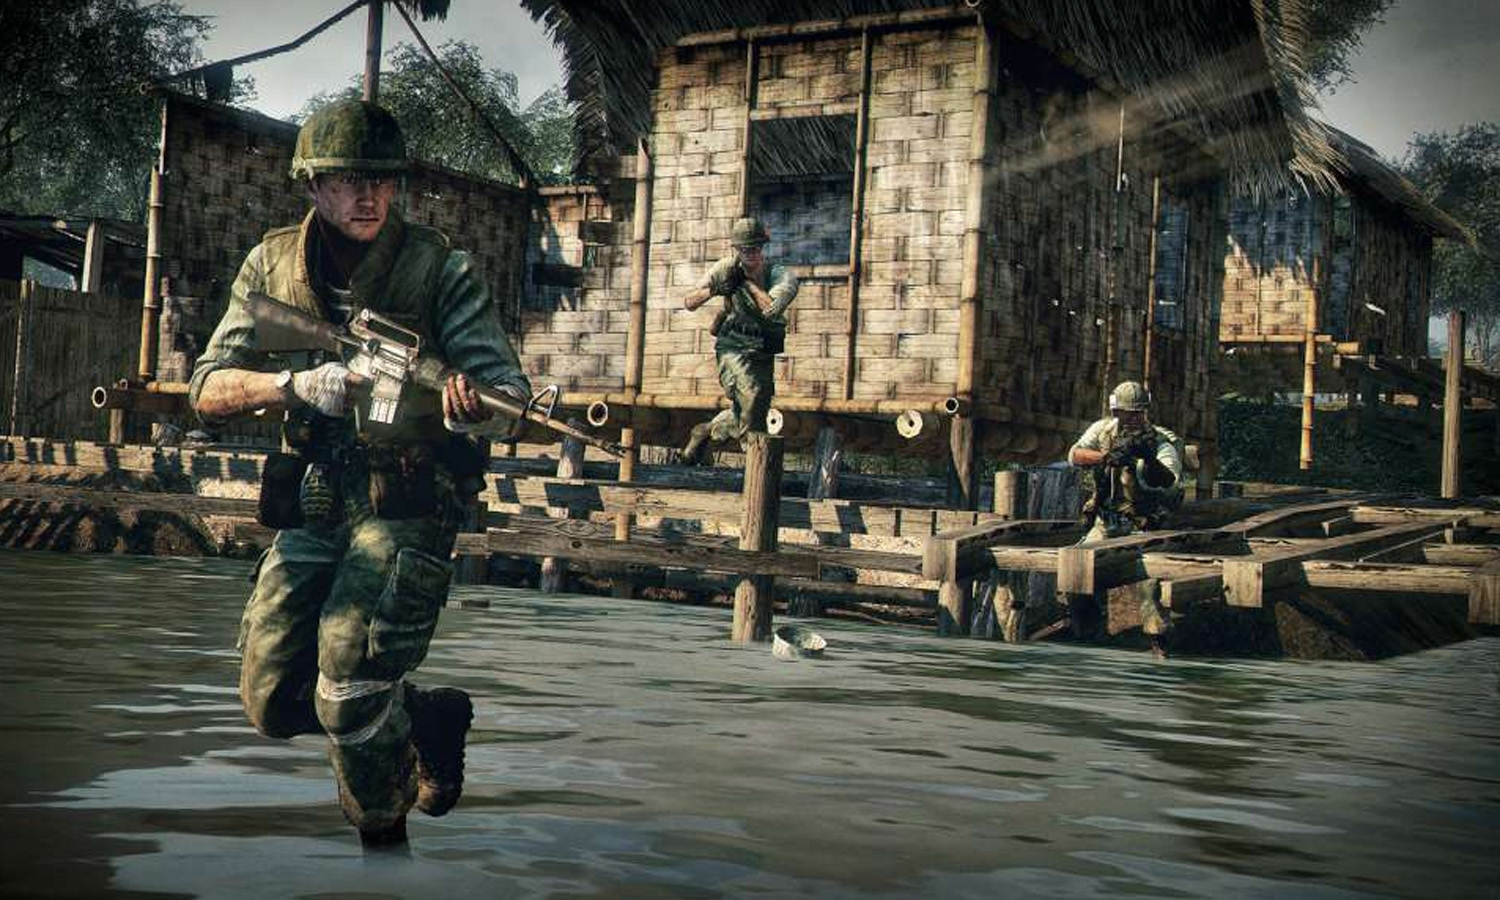 Next Battlefield Game Could Be Bad Company 3, Set in Vietnam - Rumour